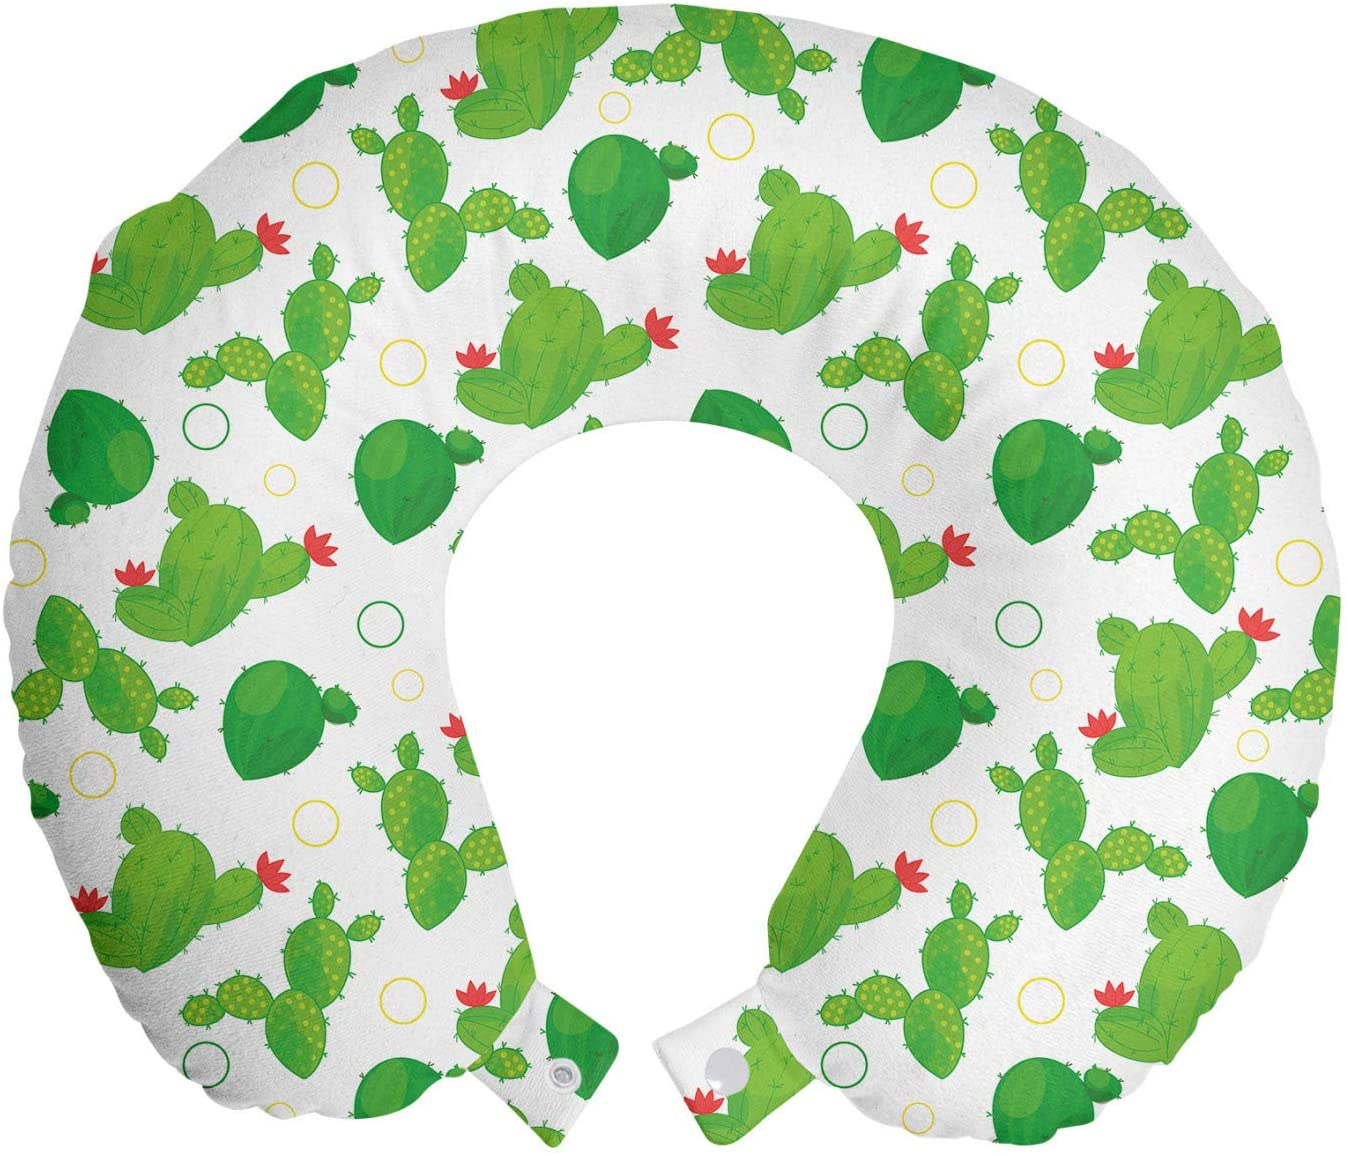 Ambesonne Cactus Travel Pillow Neck Rest, Repeating Cacti with Flowers and Circles, Memory Foam Traveling Accessory for Airplane and Car, 12